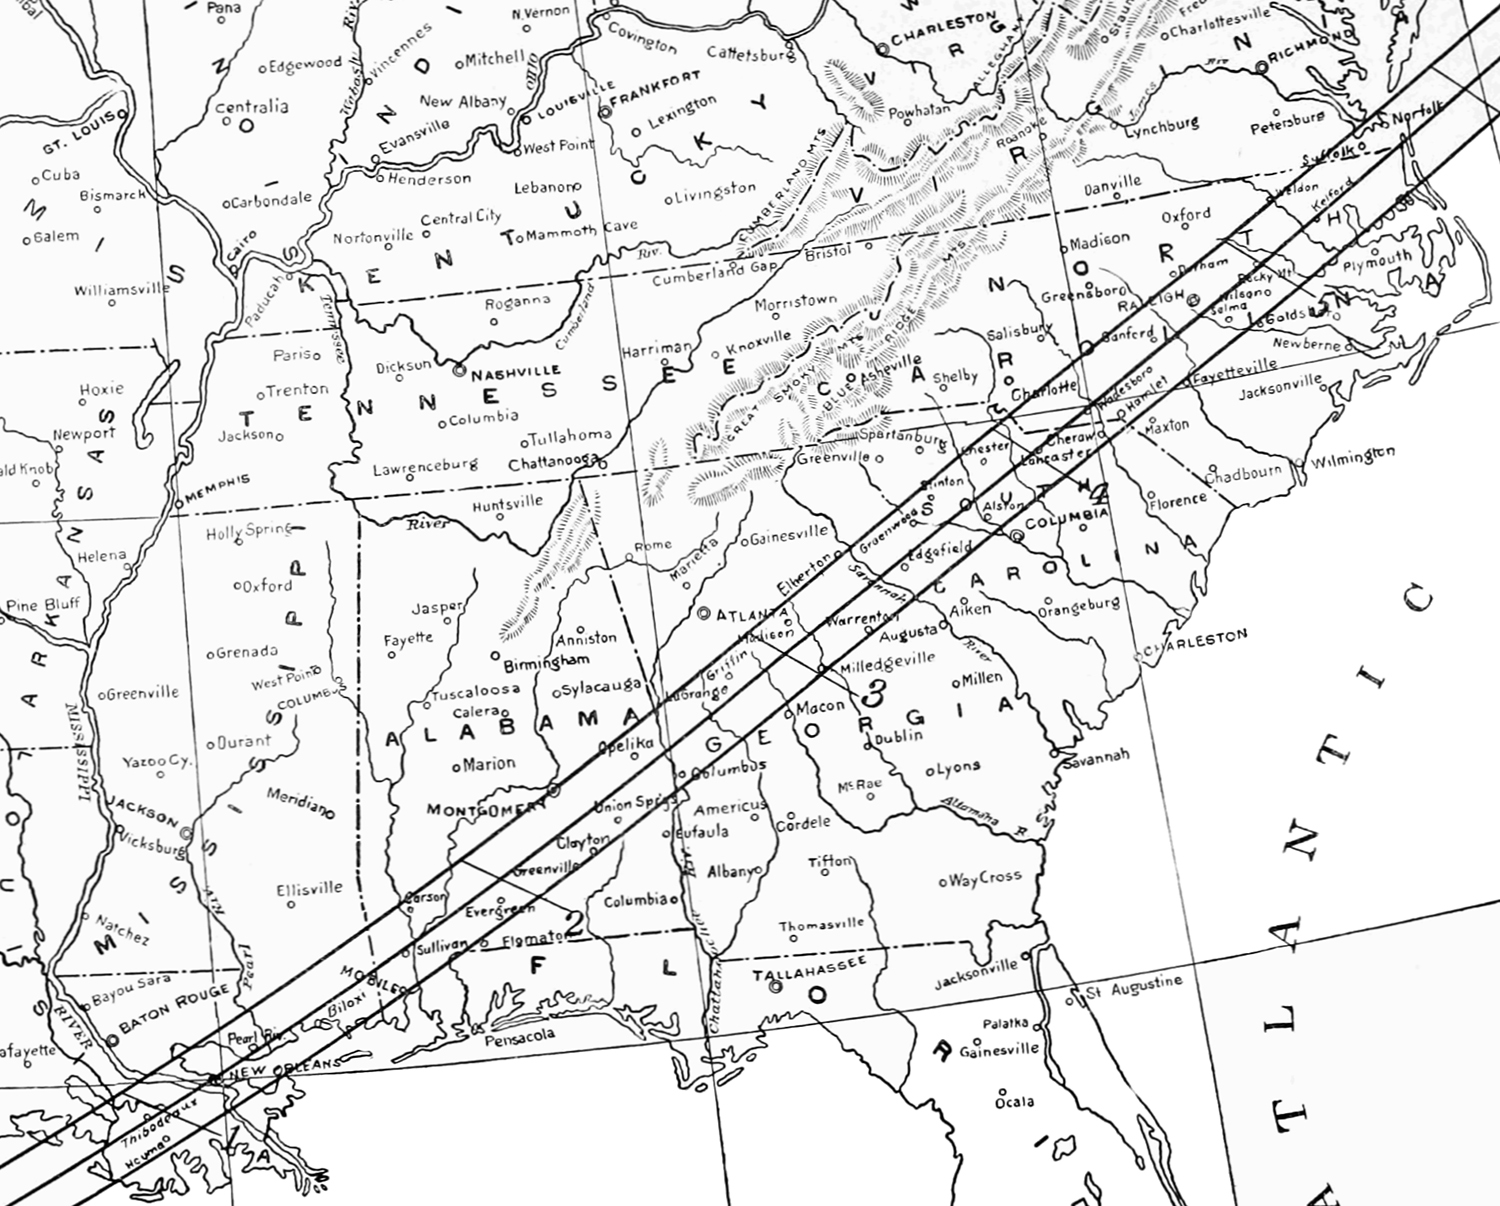 Map 1: Path of Totality during the May 28, 1900 Solar Eclipse. Black and white map of southeastern united states shows three lines crossing the states of Mississippi, Georgia, South Carolina, and North Carolina.